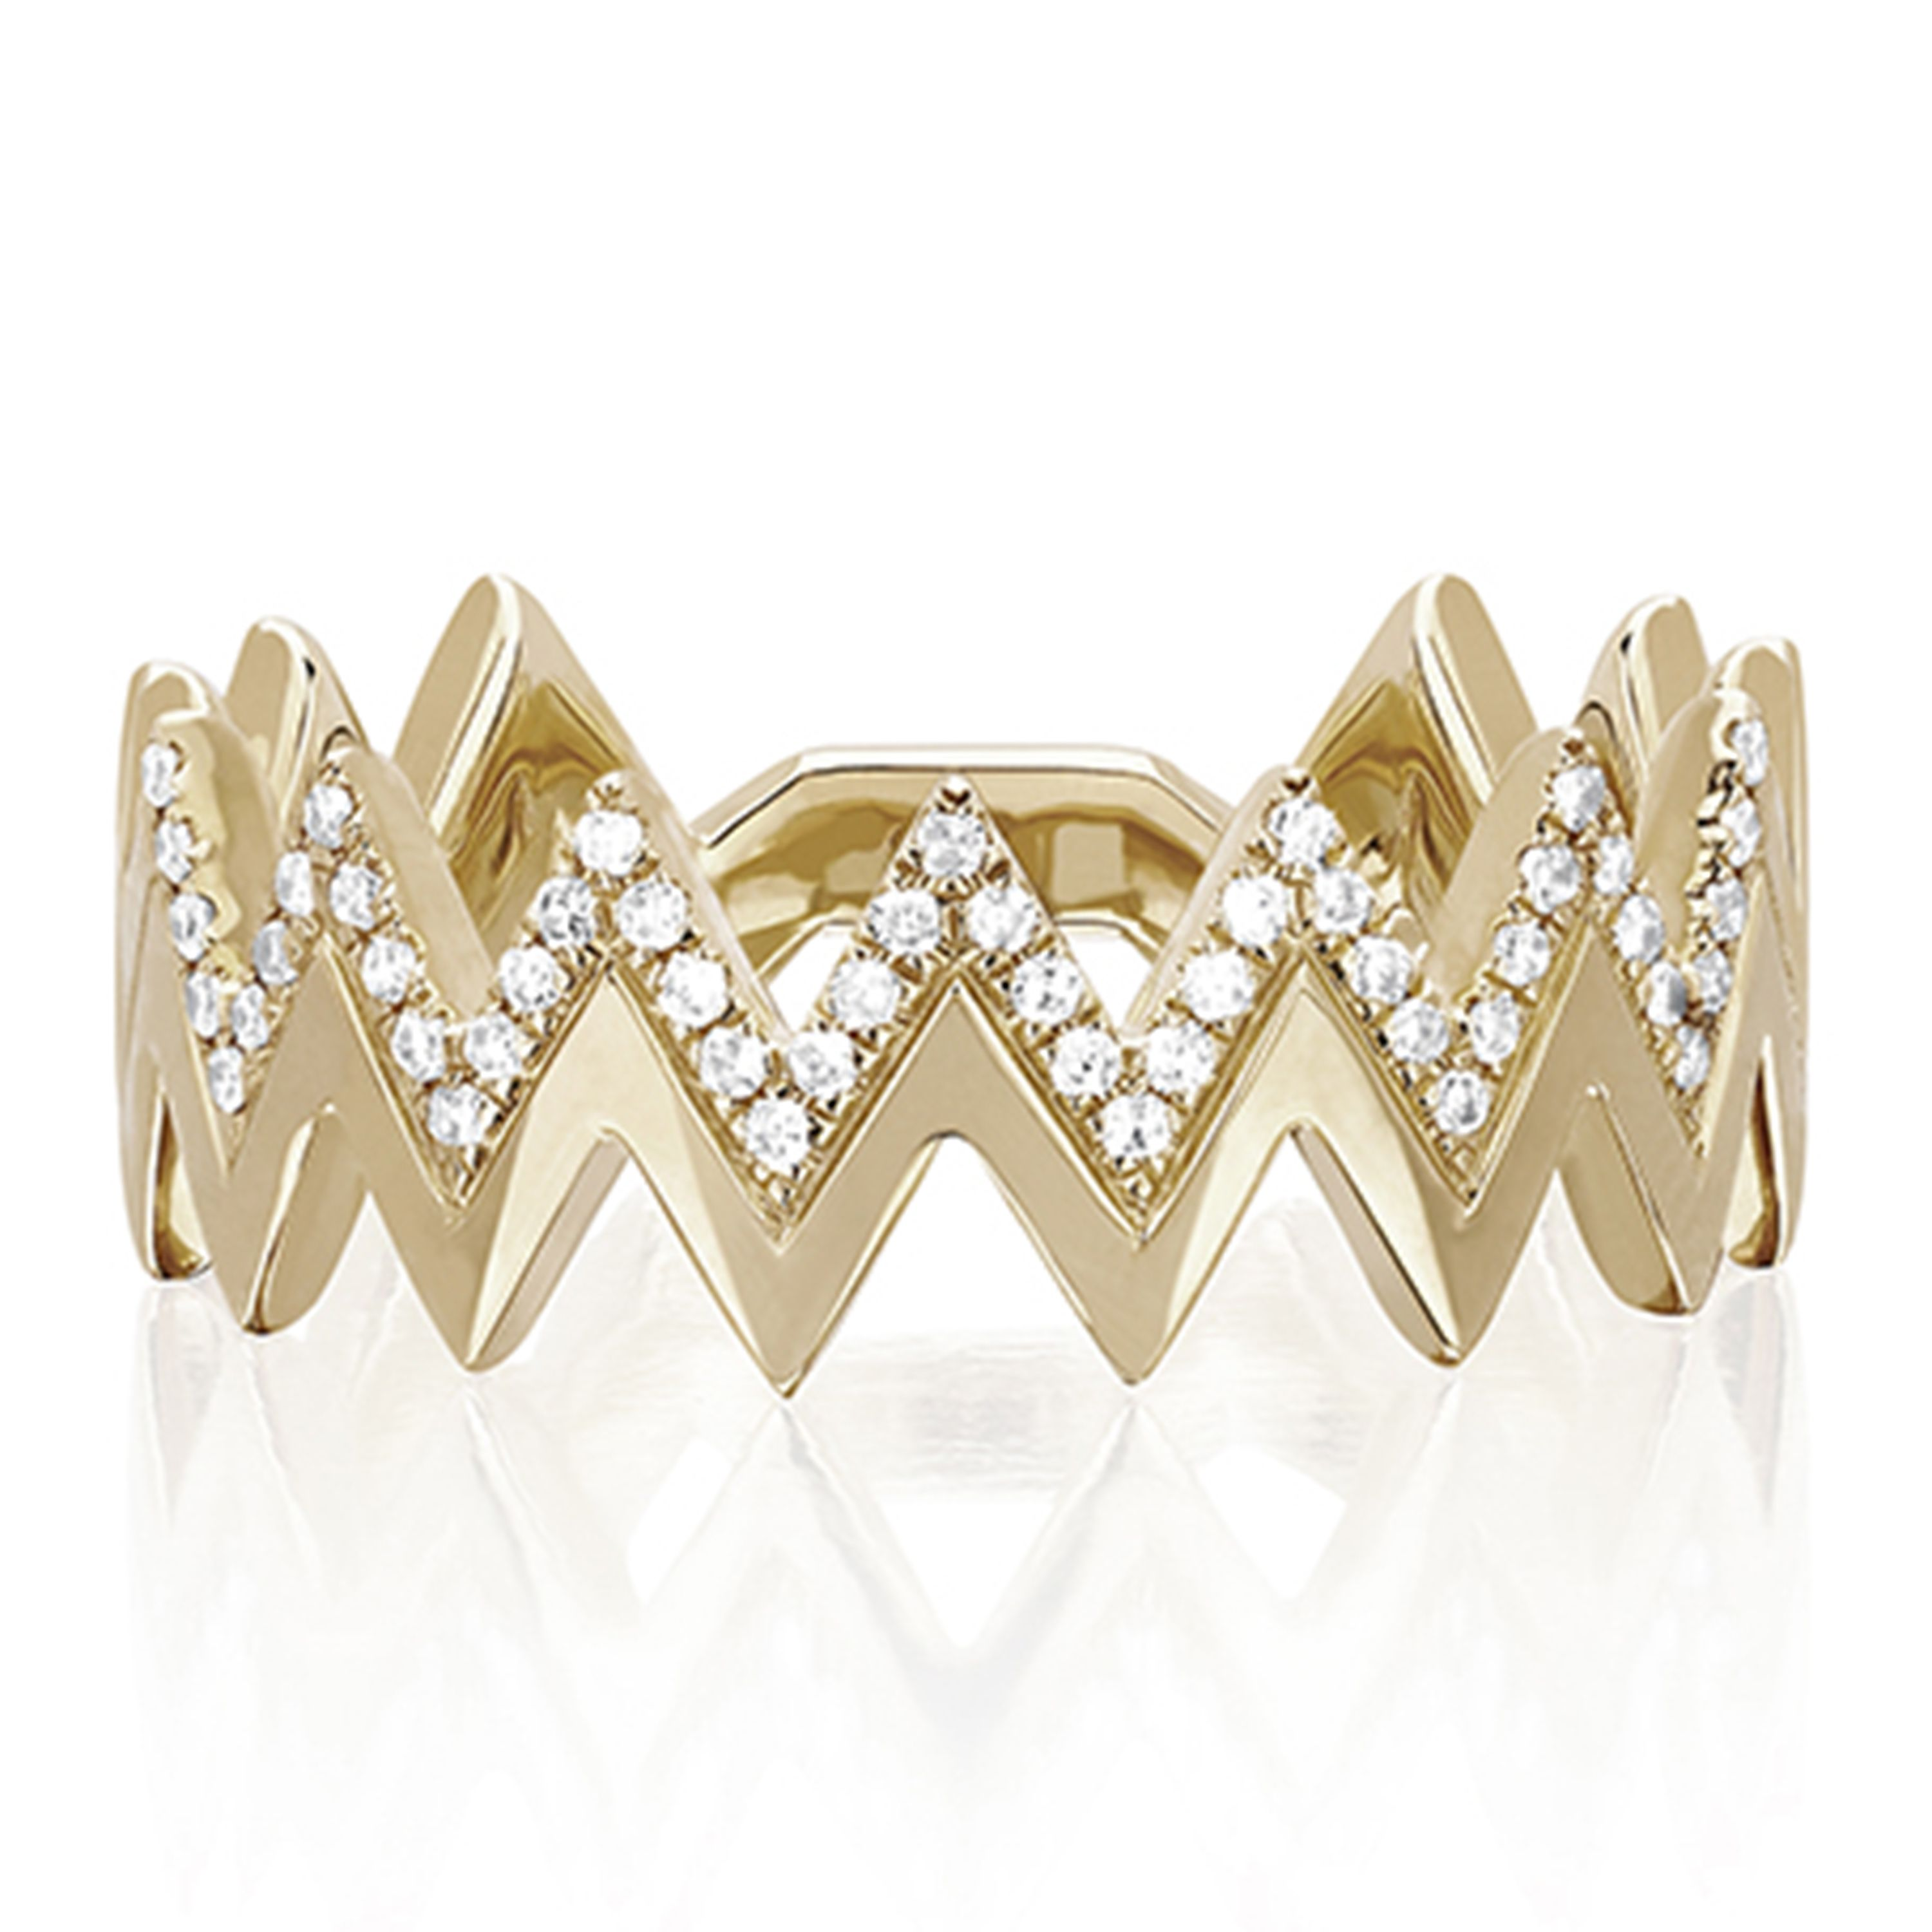 New Jewellery Brands To Know About Now